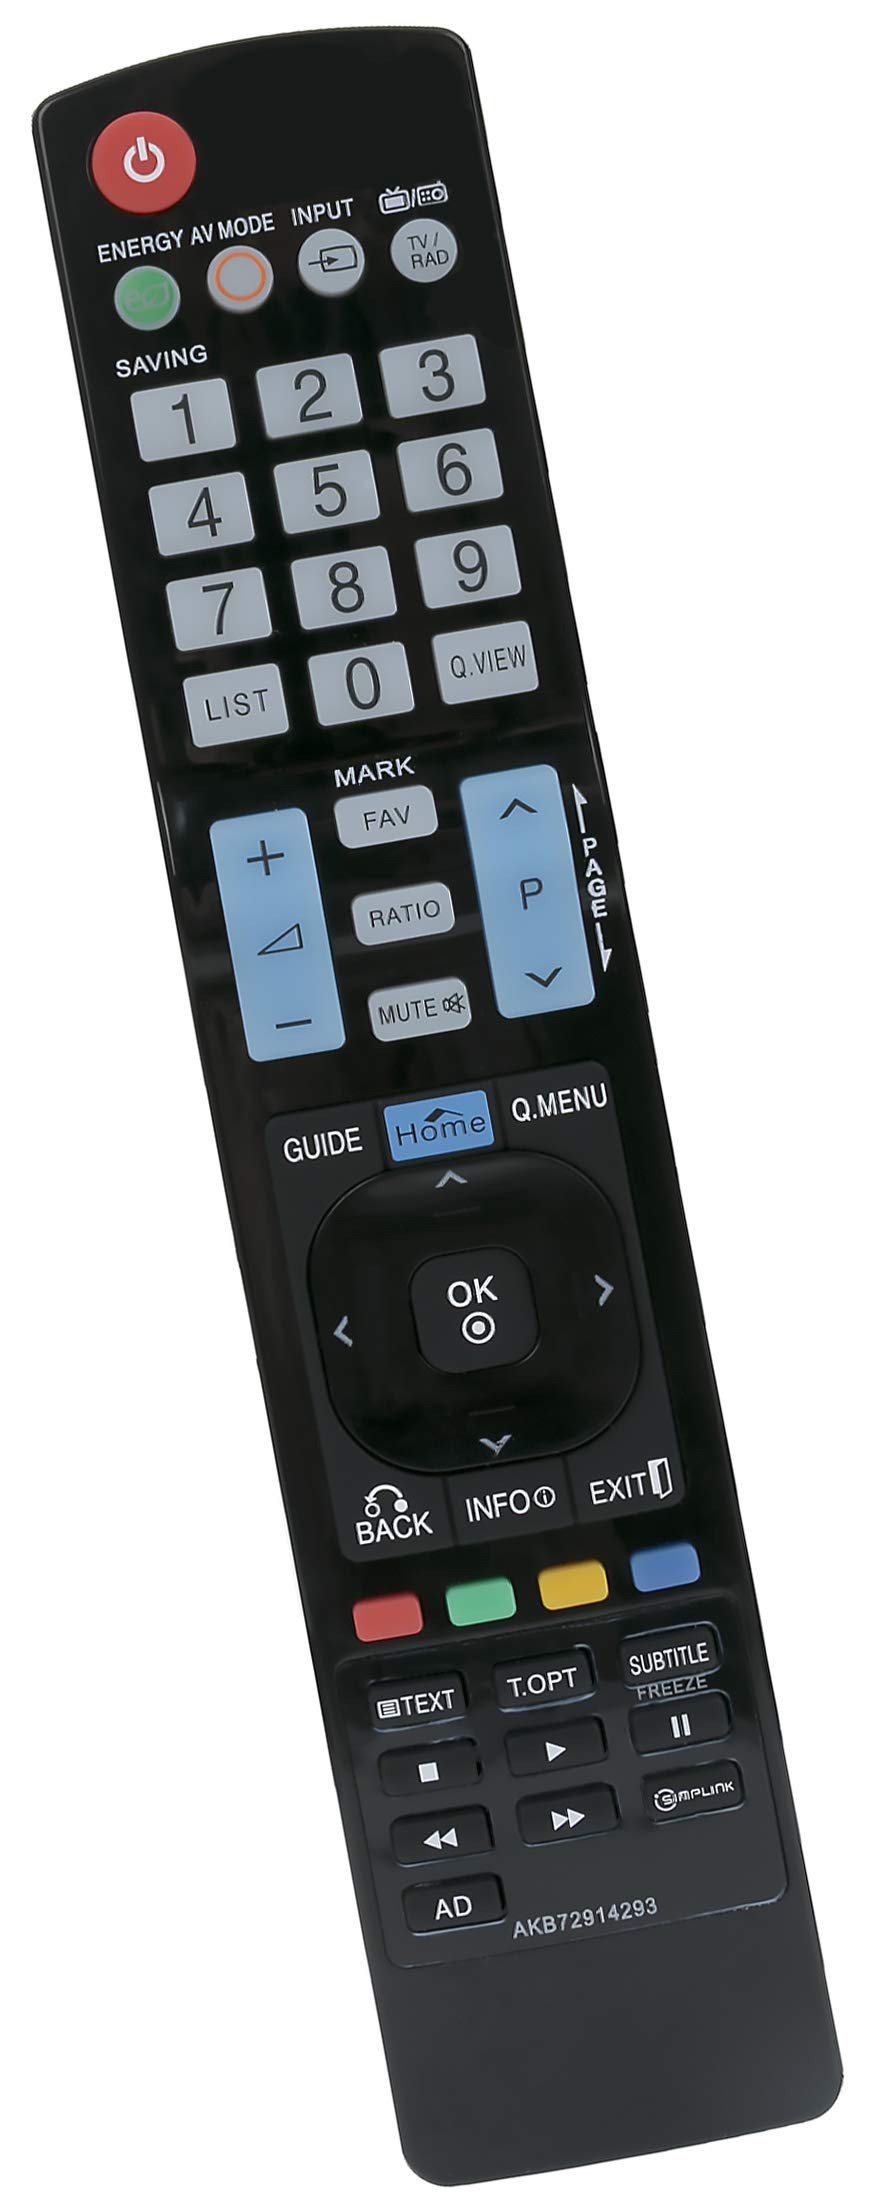 ALLIMITY AKB72914293 Remote Control Replace for LG Plasma TV AKB72915207 AKB72915244 AKB72914202 AKB72915246 AKB73275606 AKB72915217